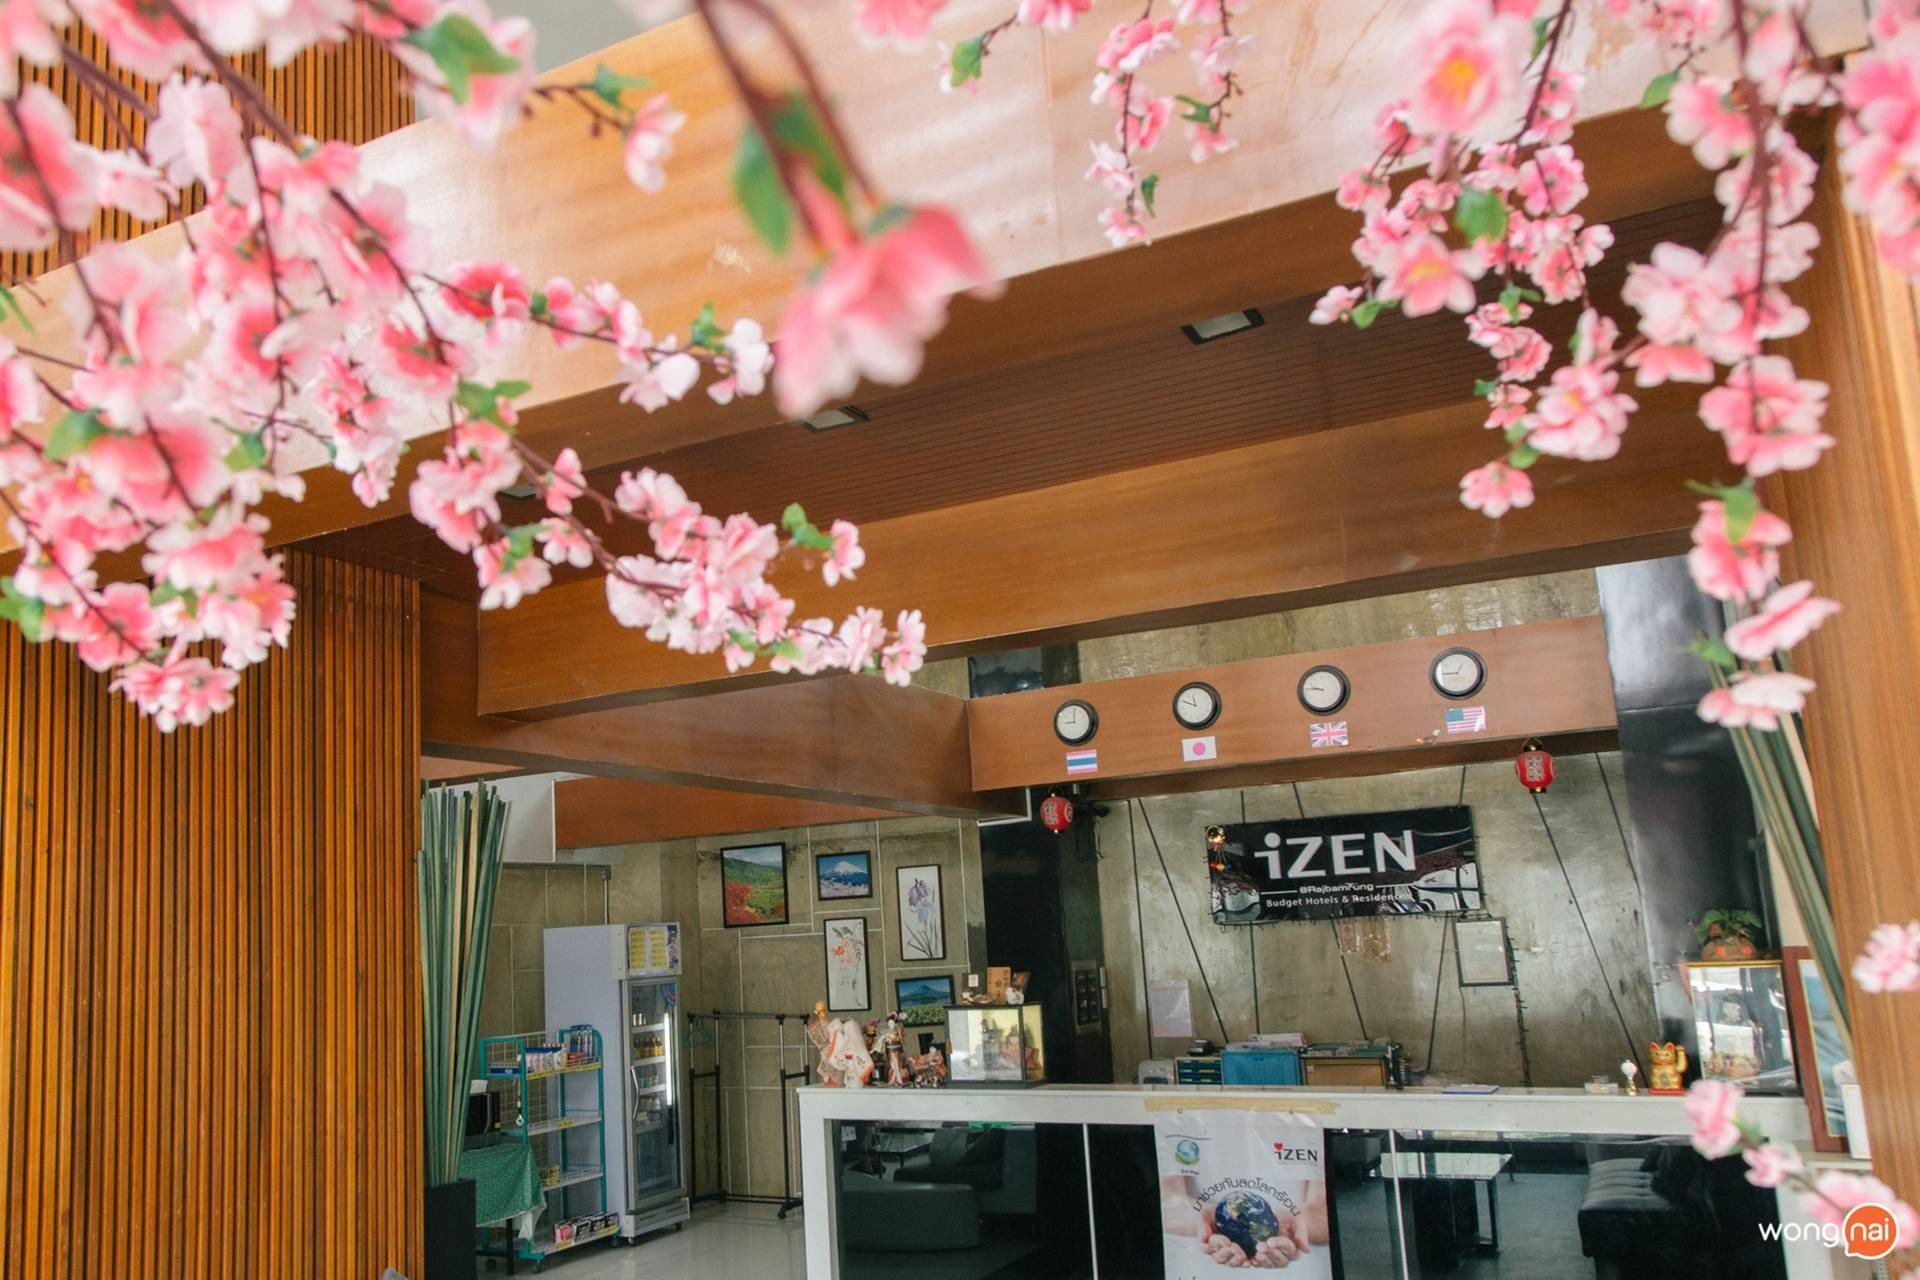 Izen Budget Hotel and Resident